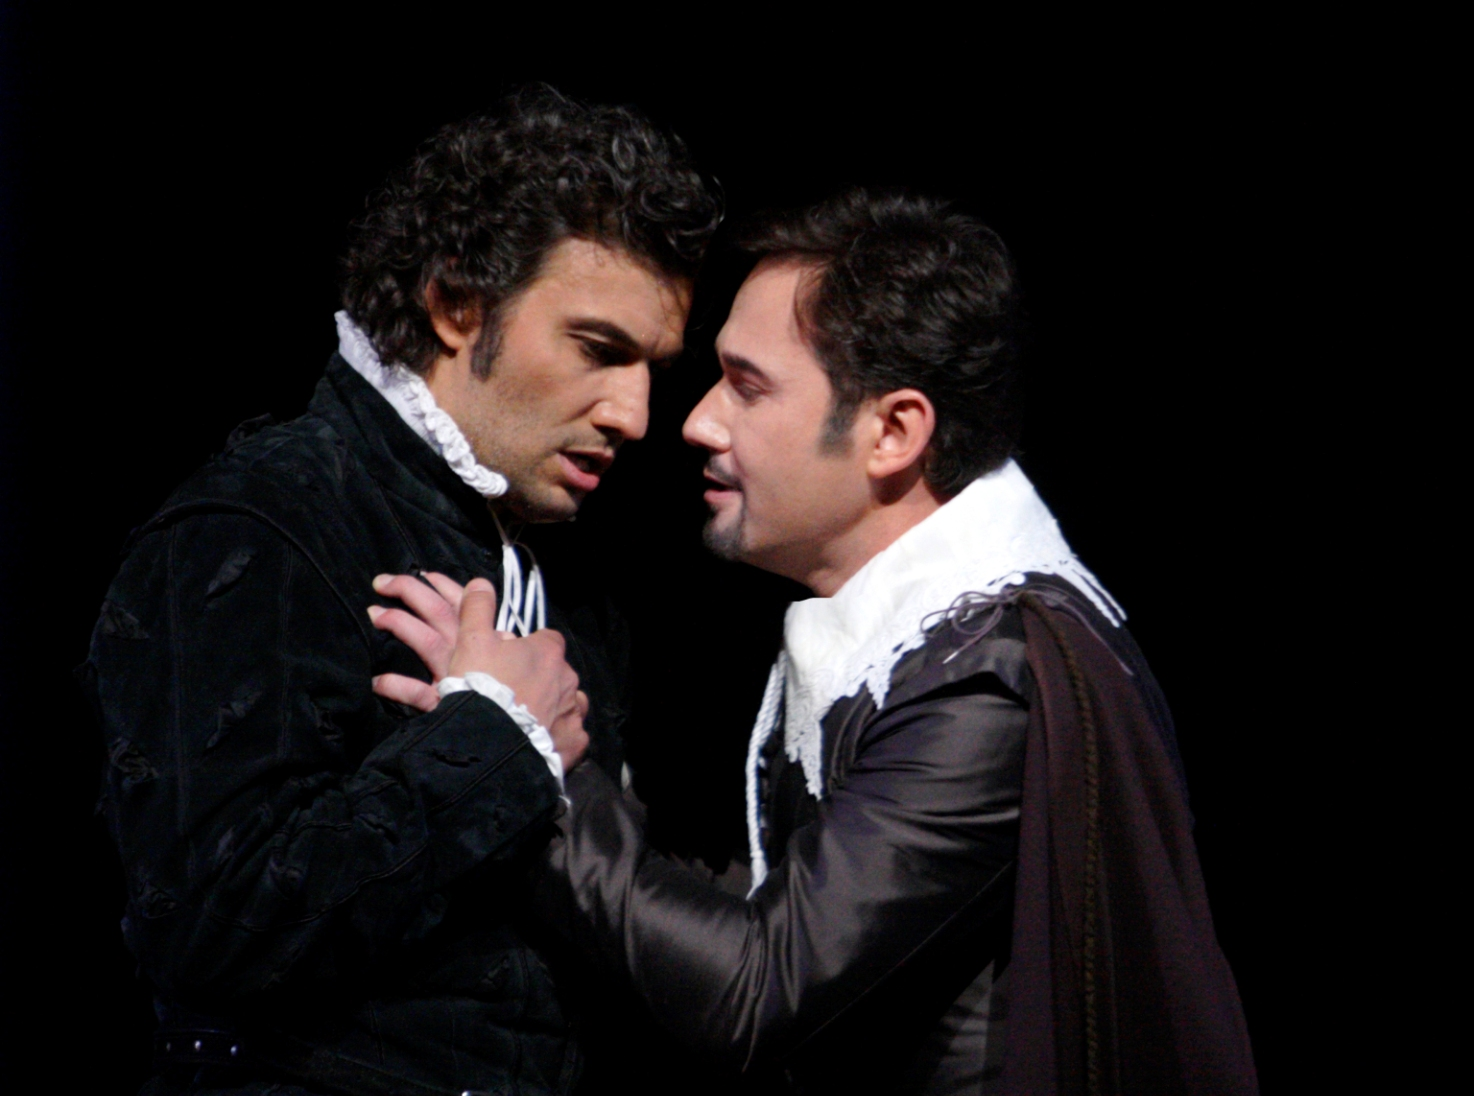 Jonas Kaufmann as Carlo and Marius Kwiecien as Rodrigo in the Royal Opera Don Carlo, photo by Catherine Ashmore